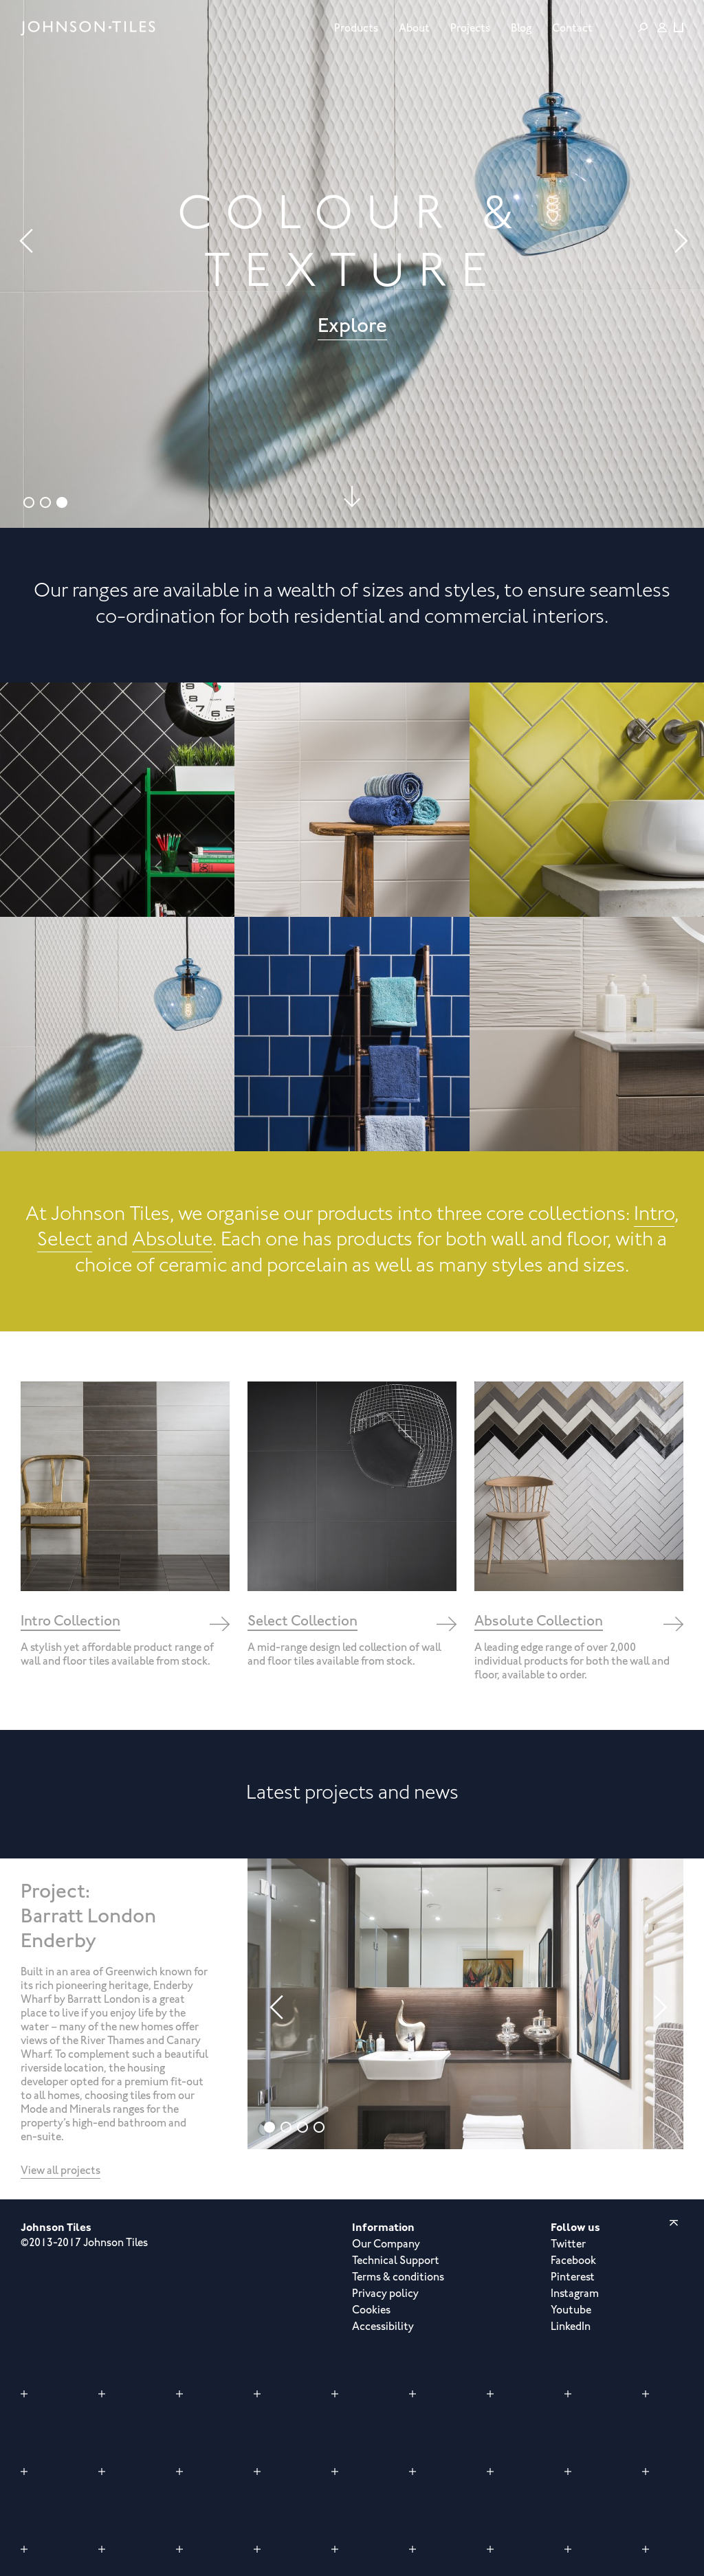 Johnson Tiles Competitors, Revenue and Employees - Owler Company Profile